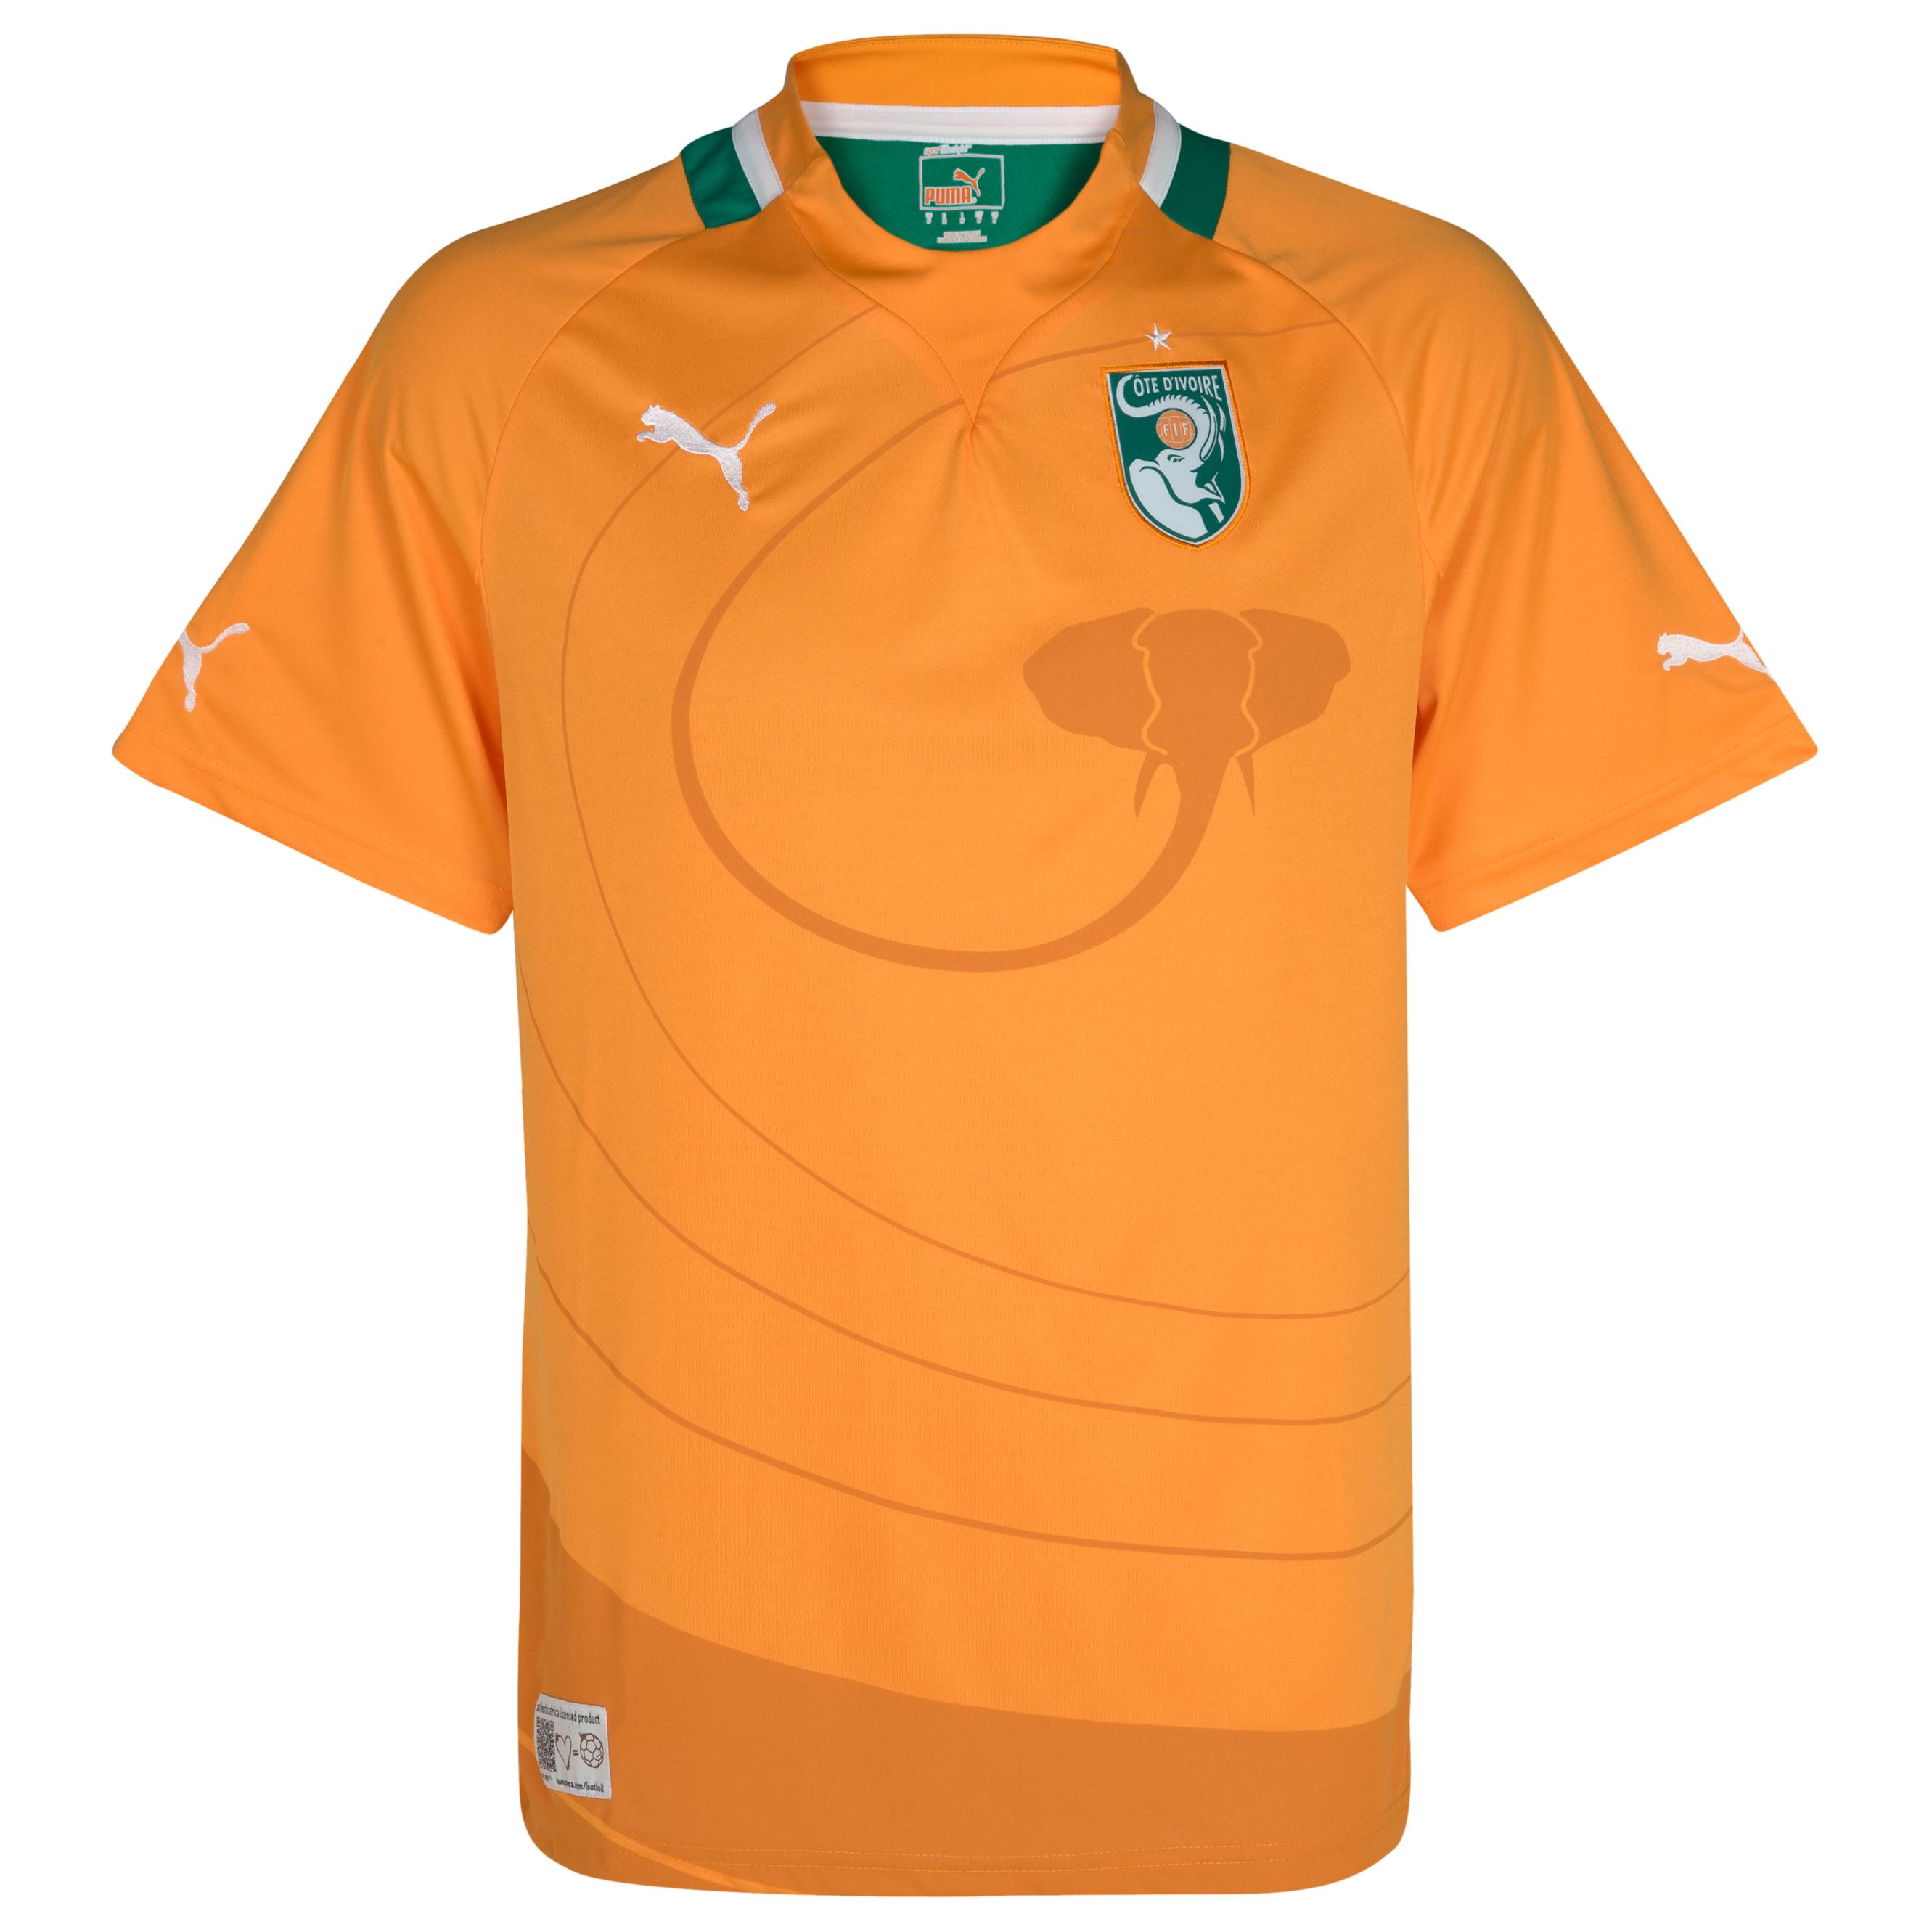 Ivory Coast Home Shirt 2011/13 - Flame Orange/Pepper Green